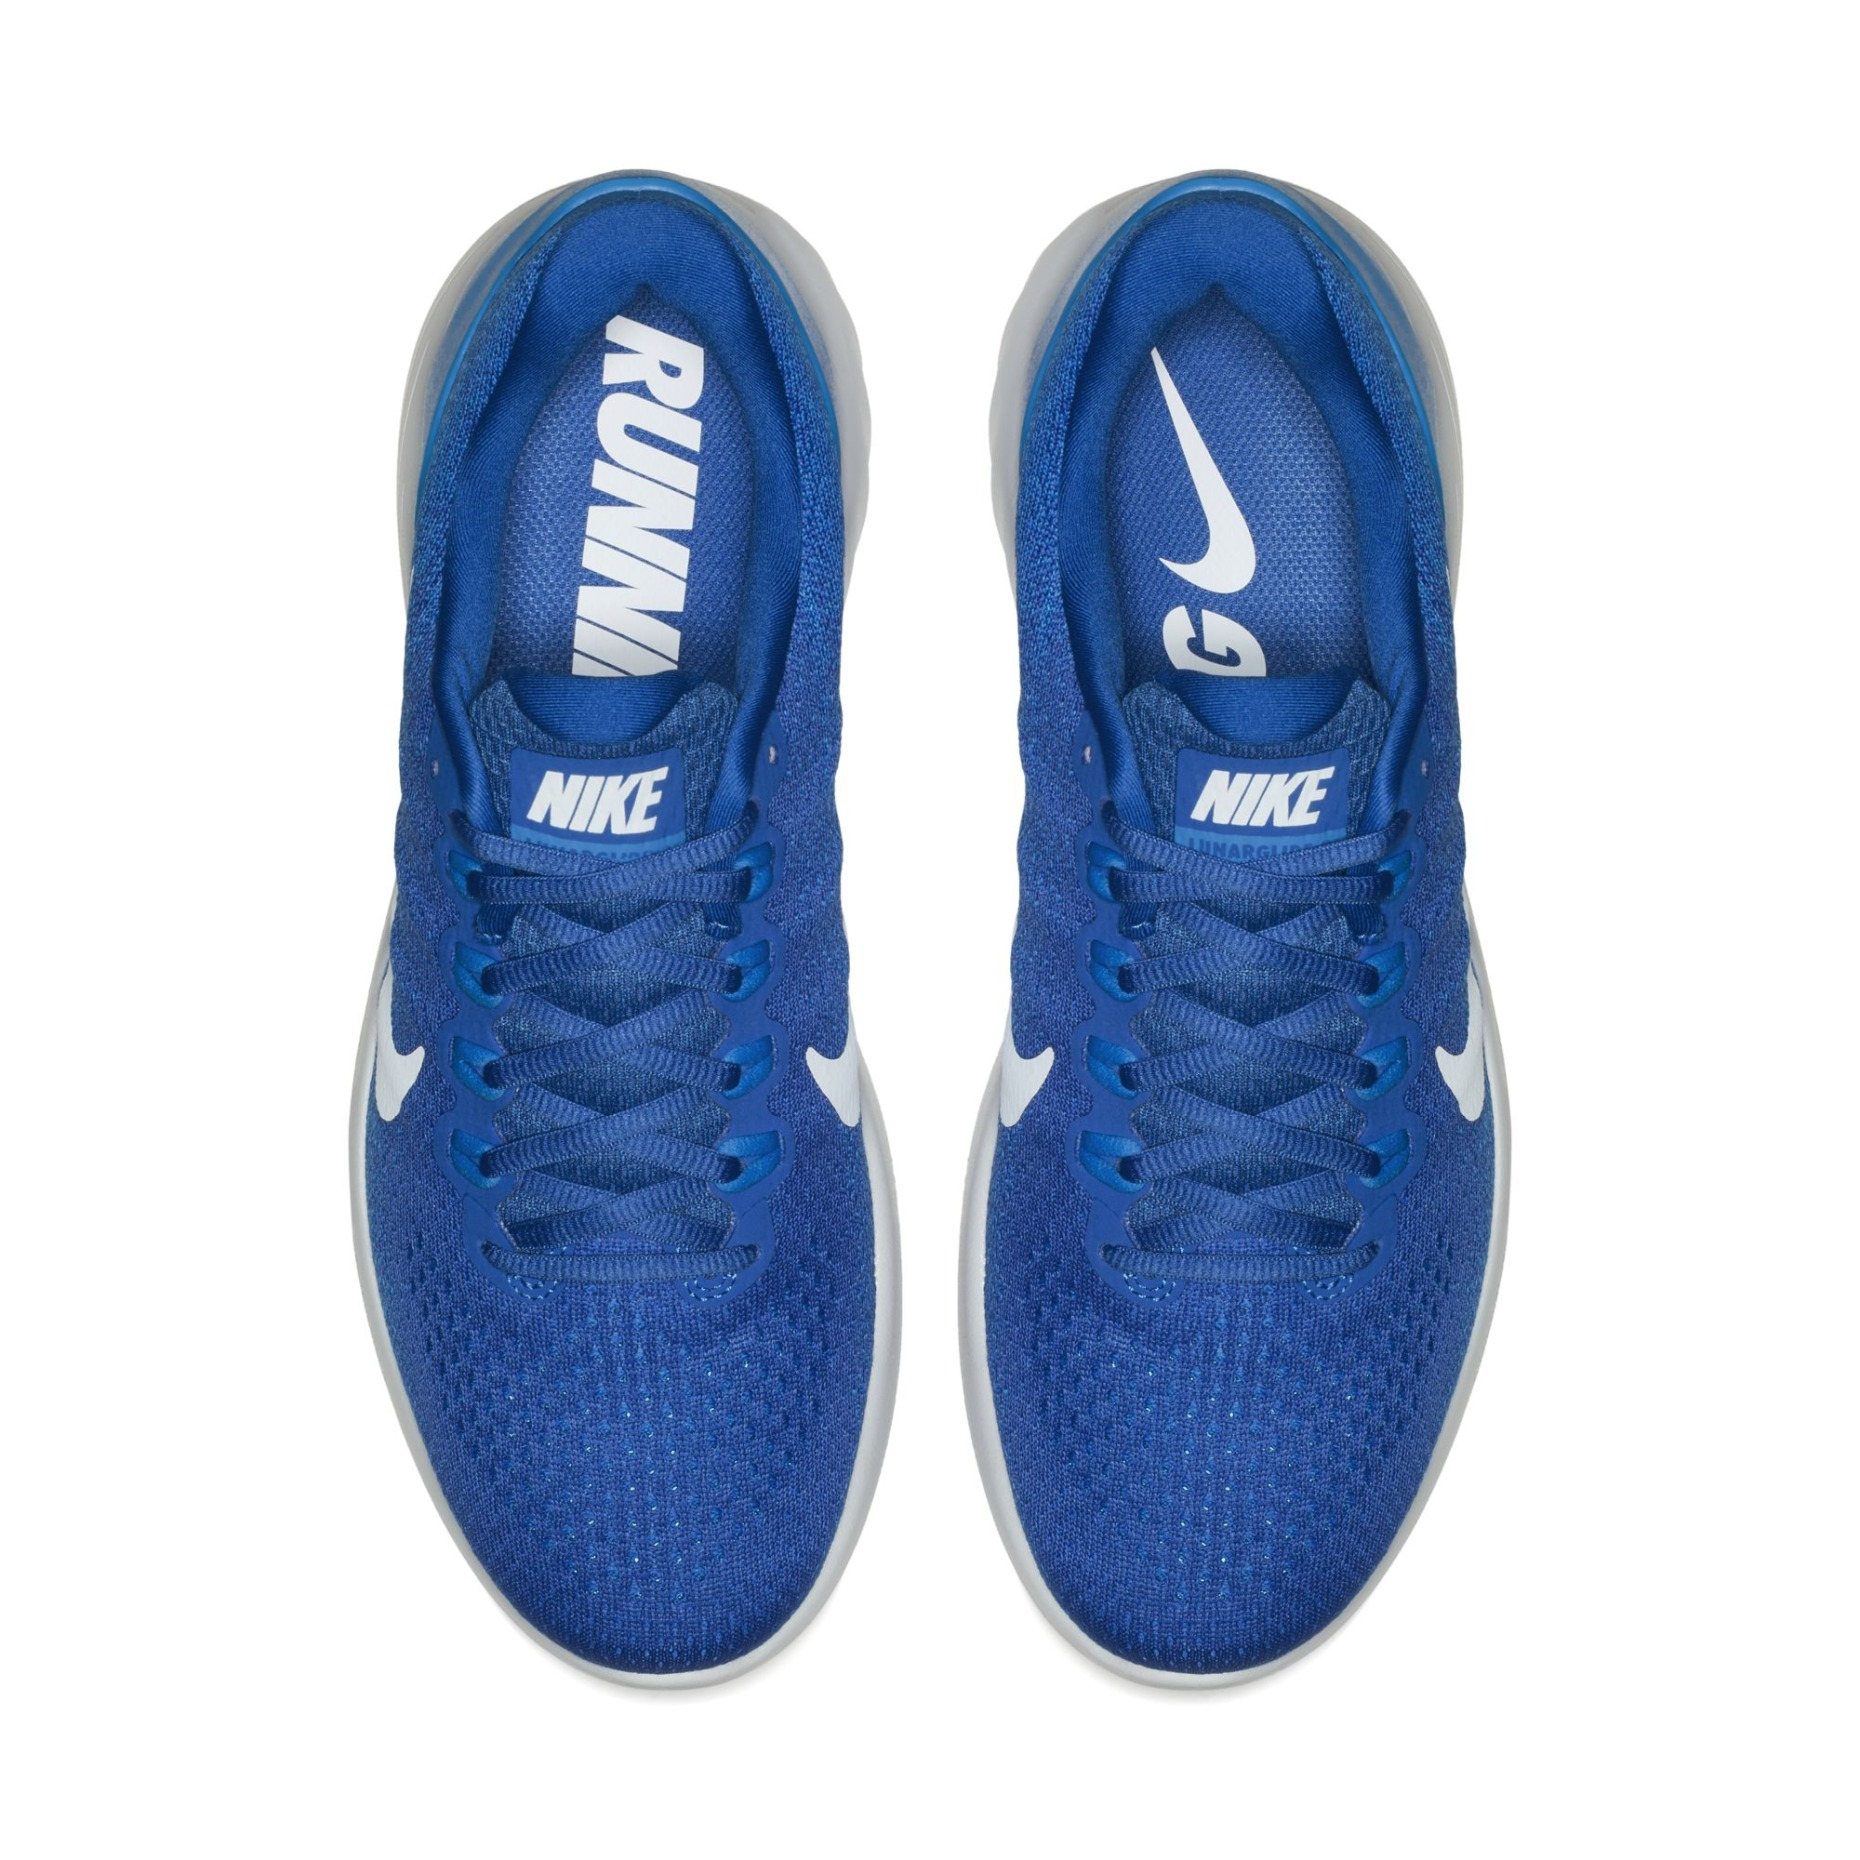 buy popular 1eaa7 4716c Nike LunarGlide 9 Running Shoes - SPORT SHOES RUNNING SHOES ...